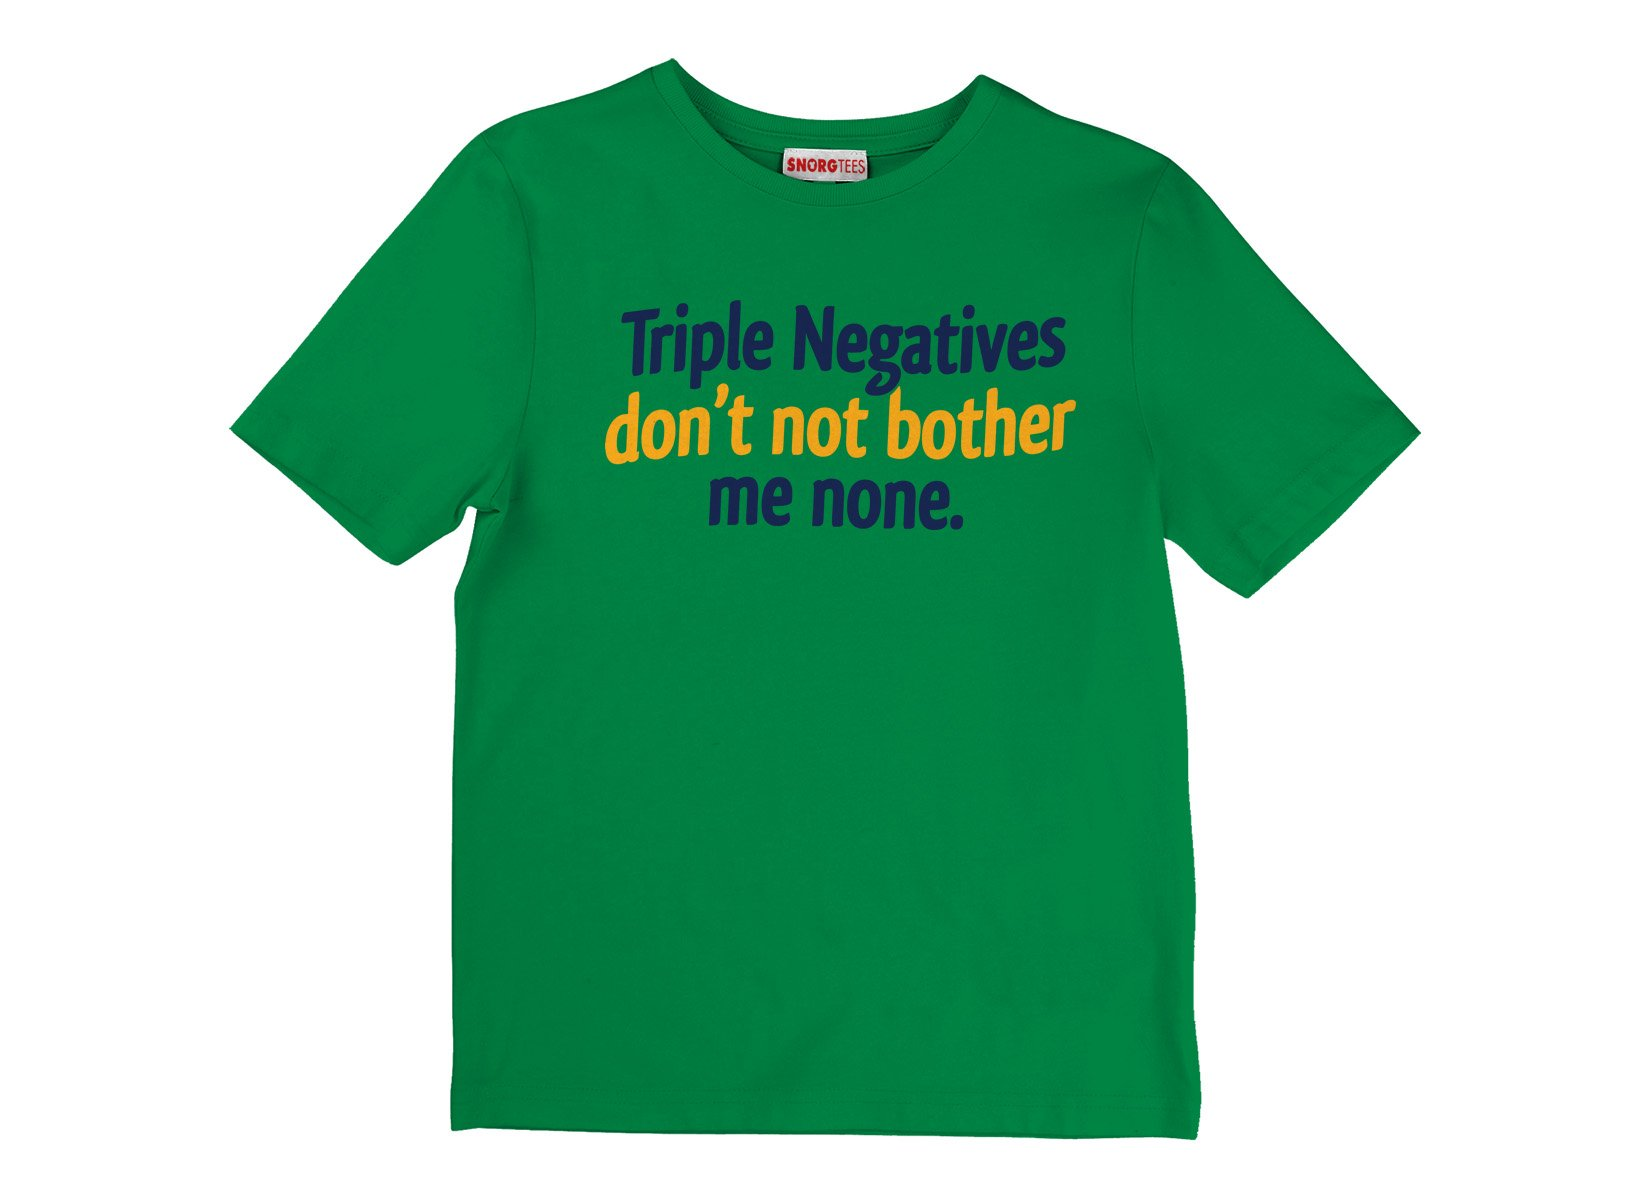 Triple Negatives Don't Not Bother Me None on Kids T-Shirt